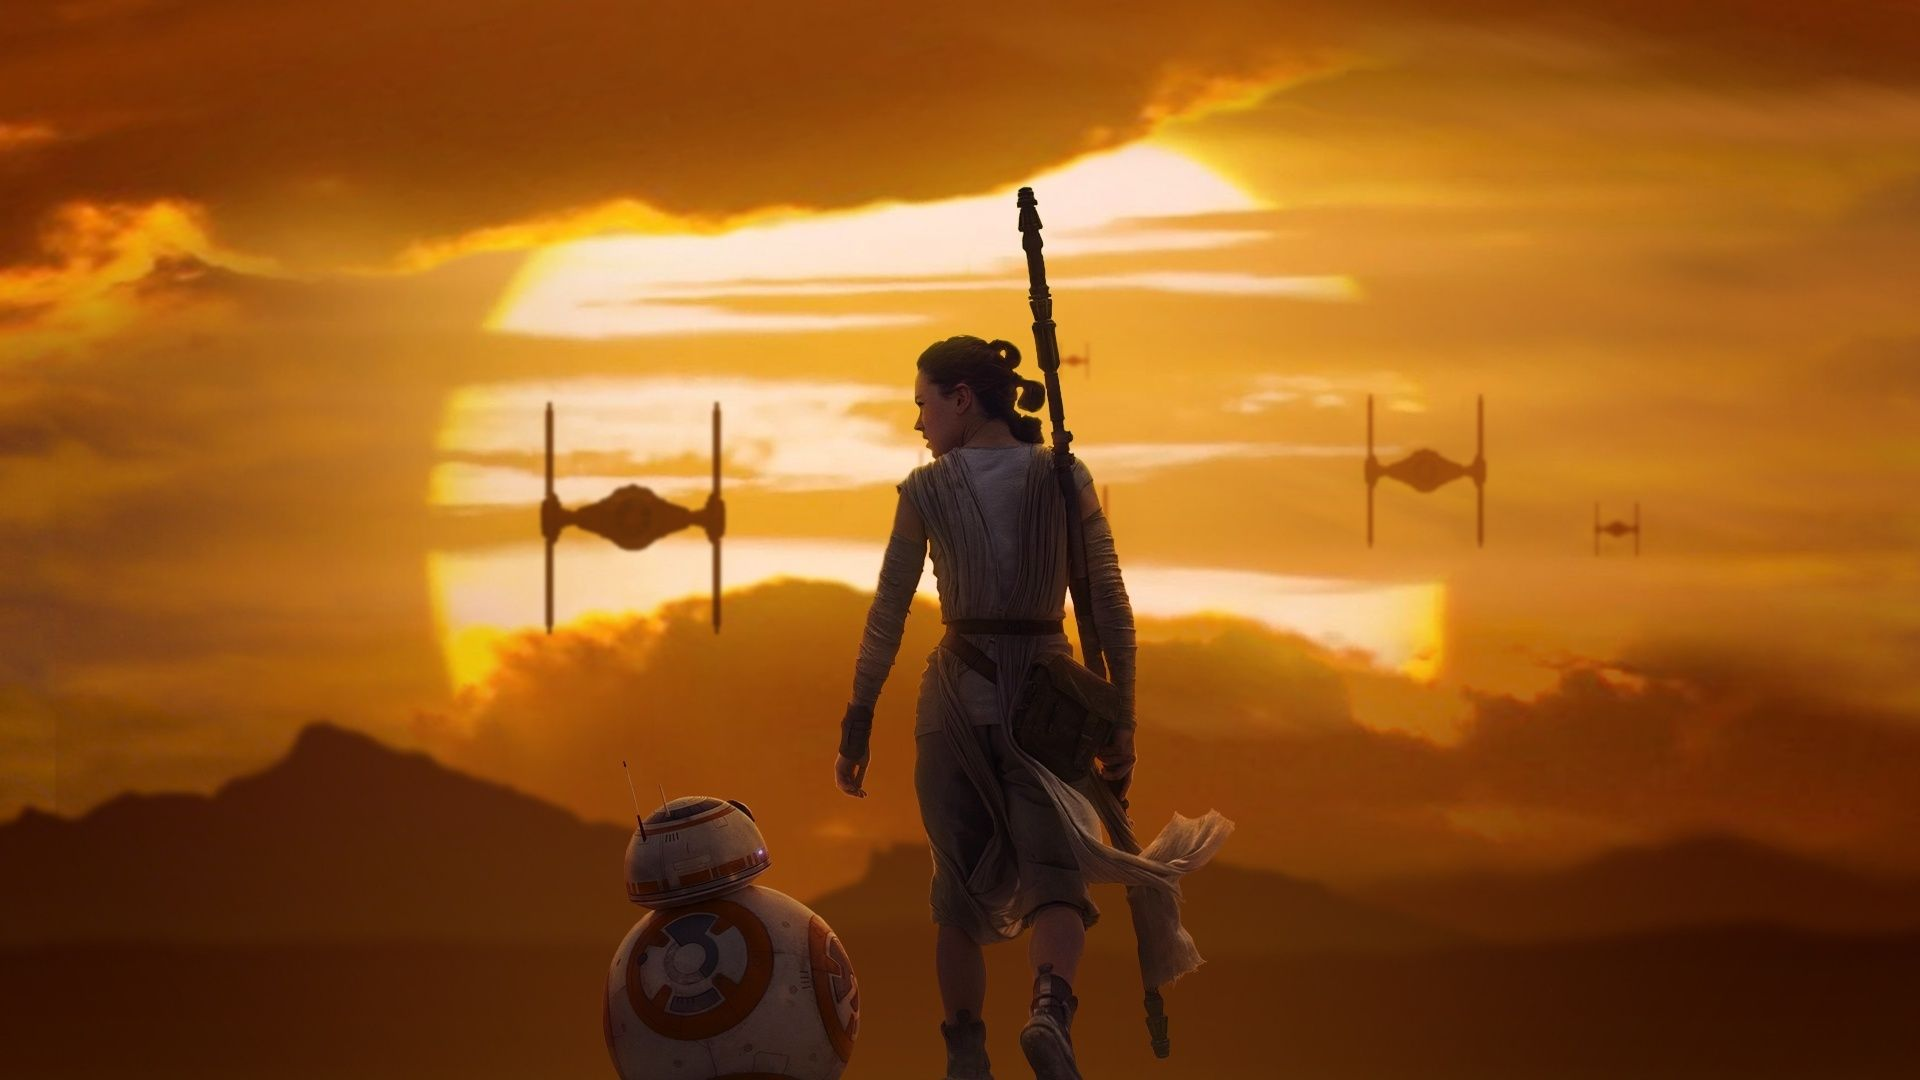 Free Rey Bb 8 Star Wars The Force Awakens Computer Desktop Wallpapers Pictures Images